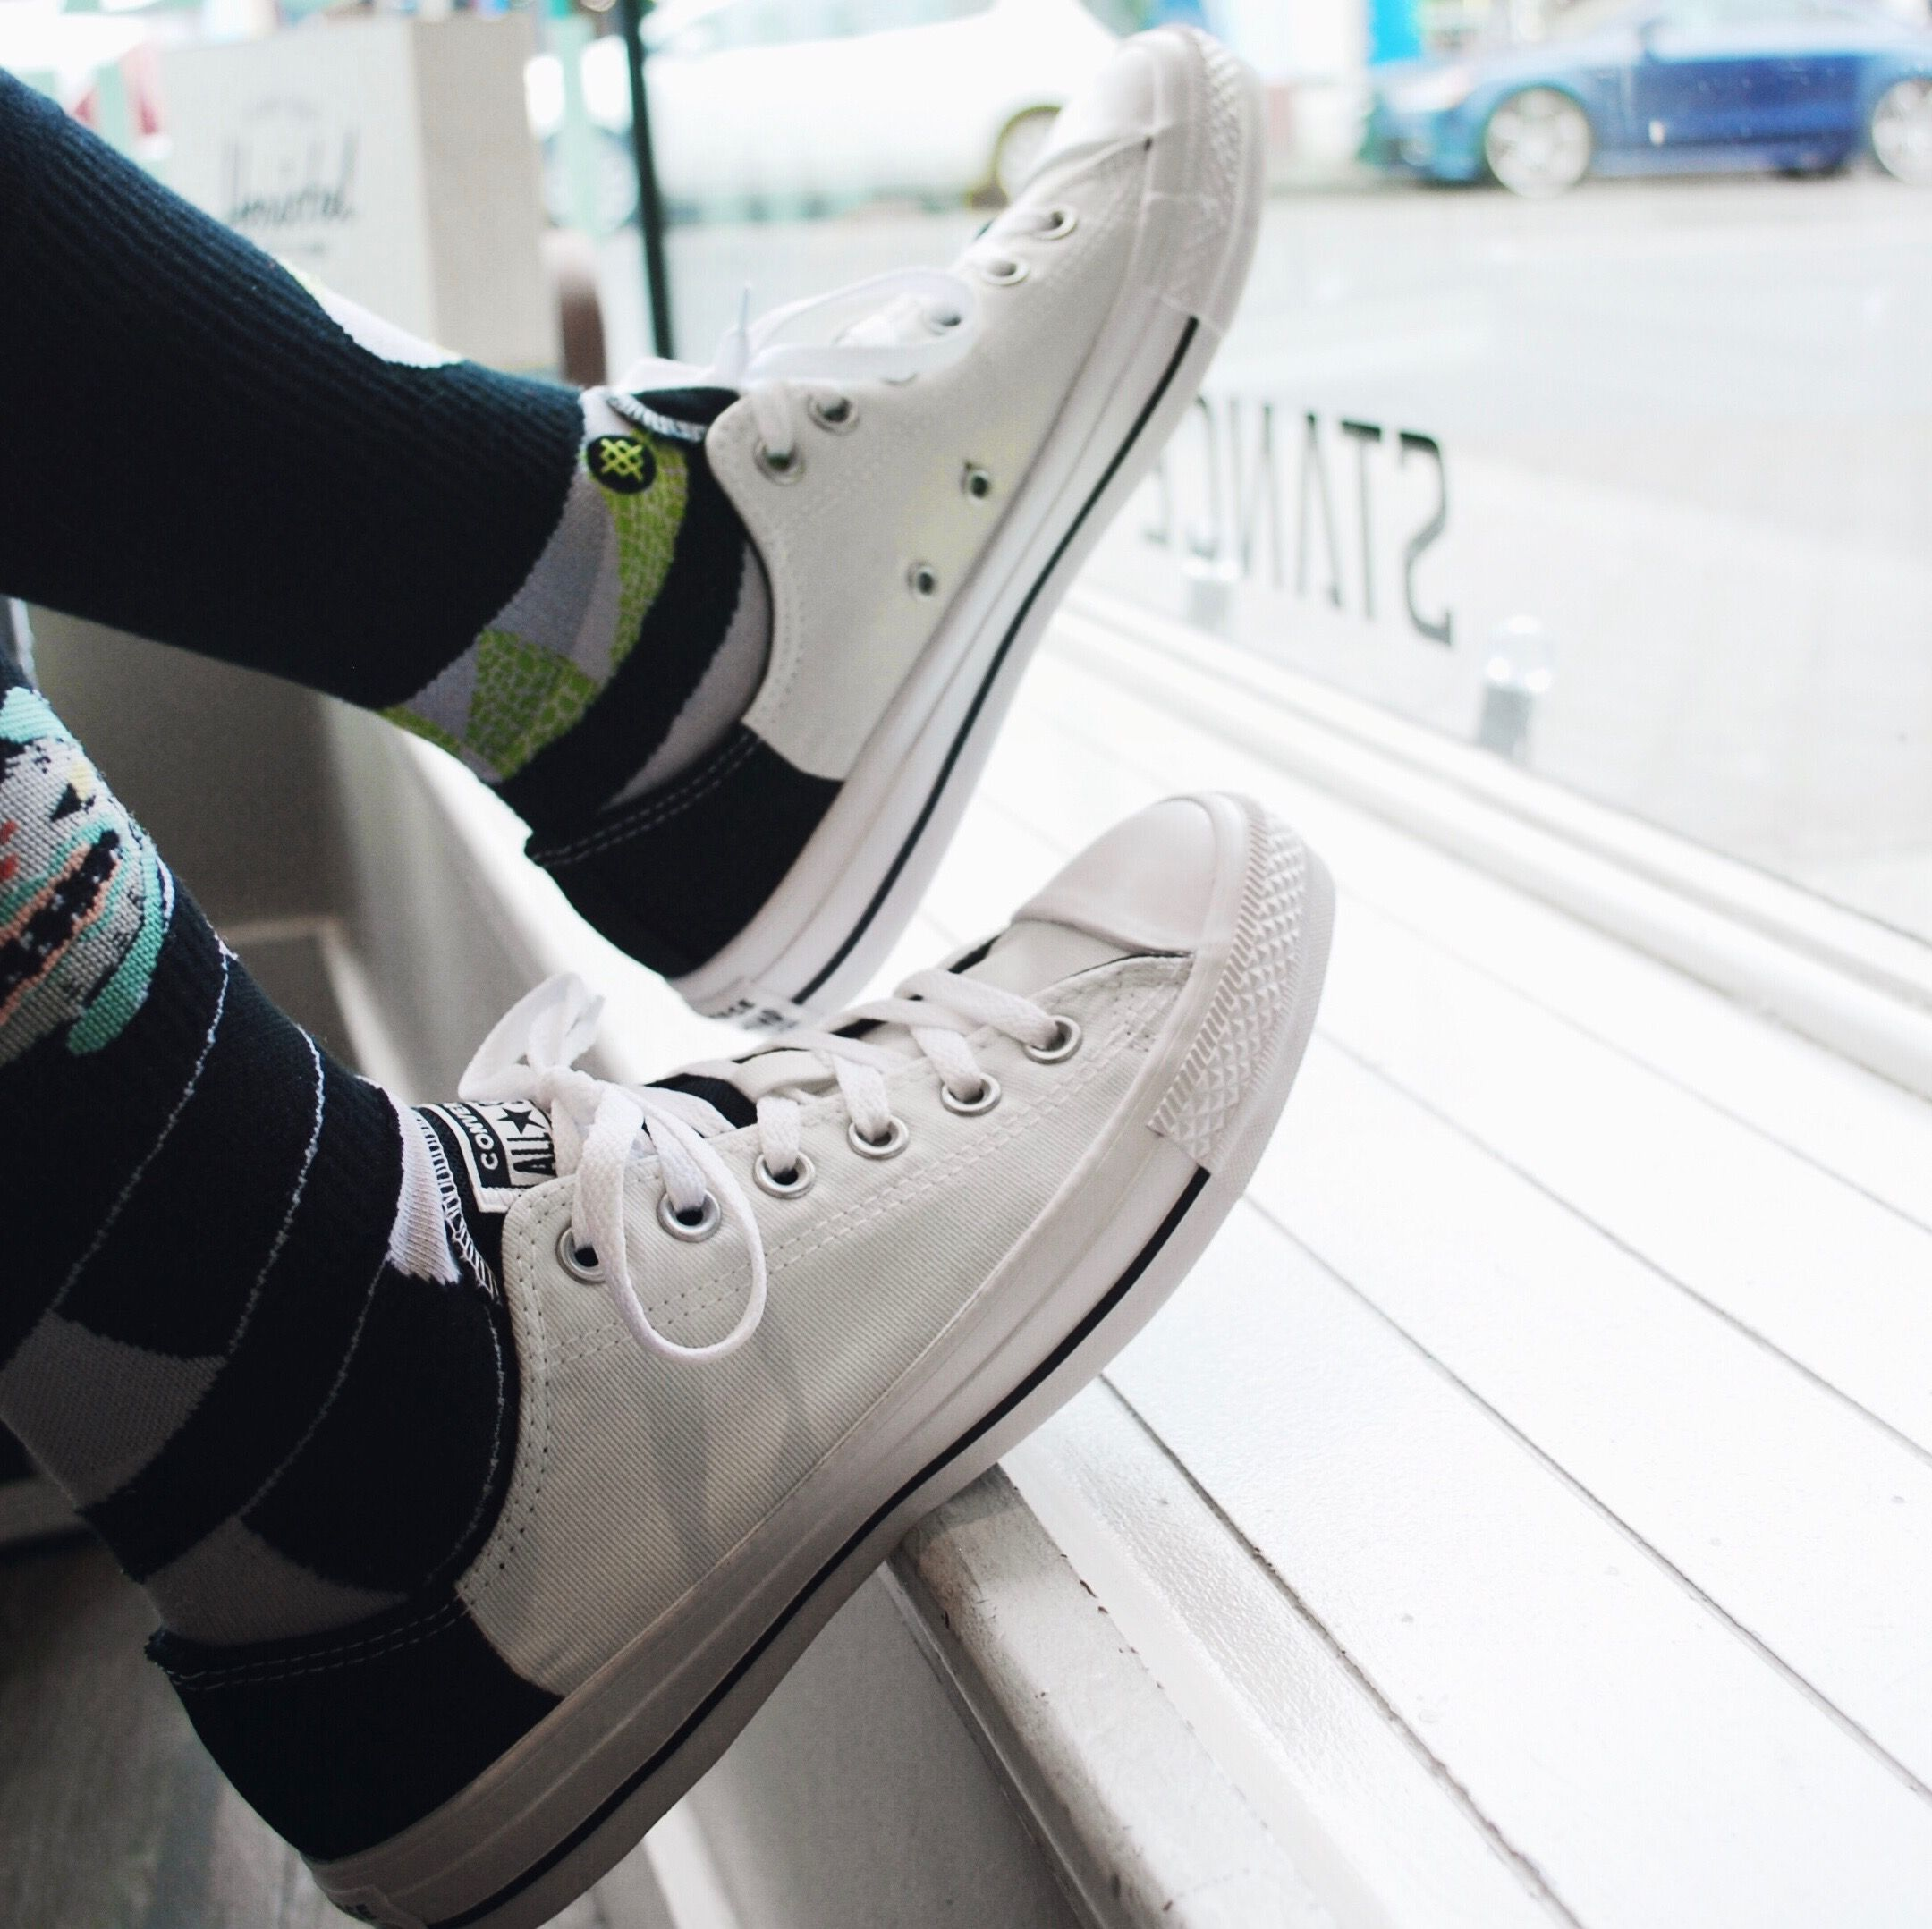 Do you need a little extra comfort in your Converse? We've